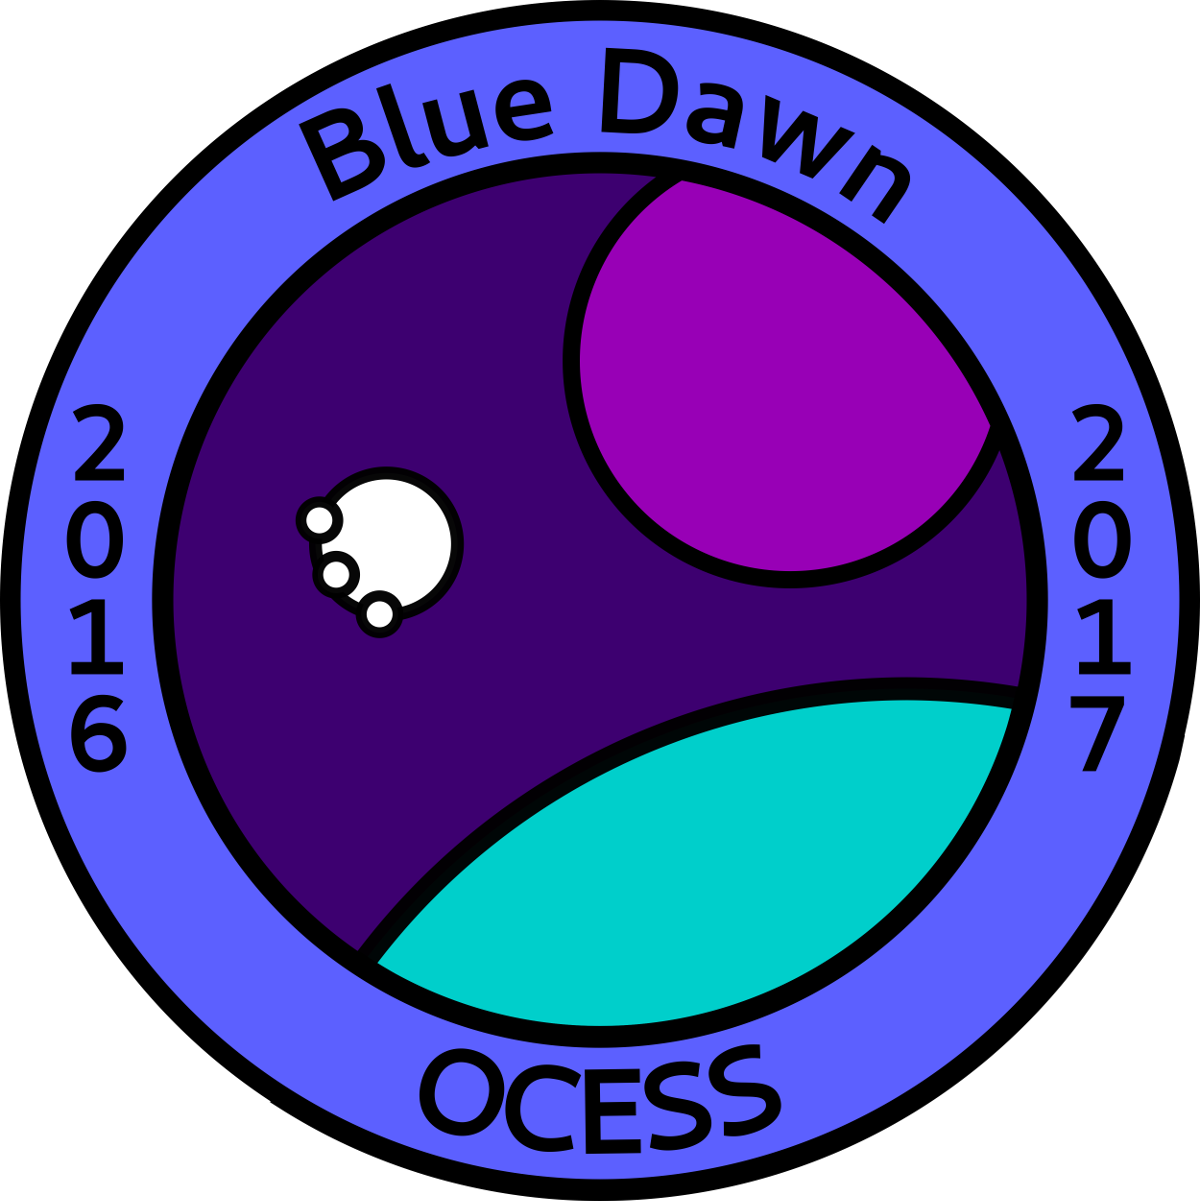 Bluedawn-patch-1200.png